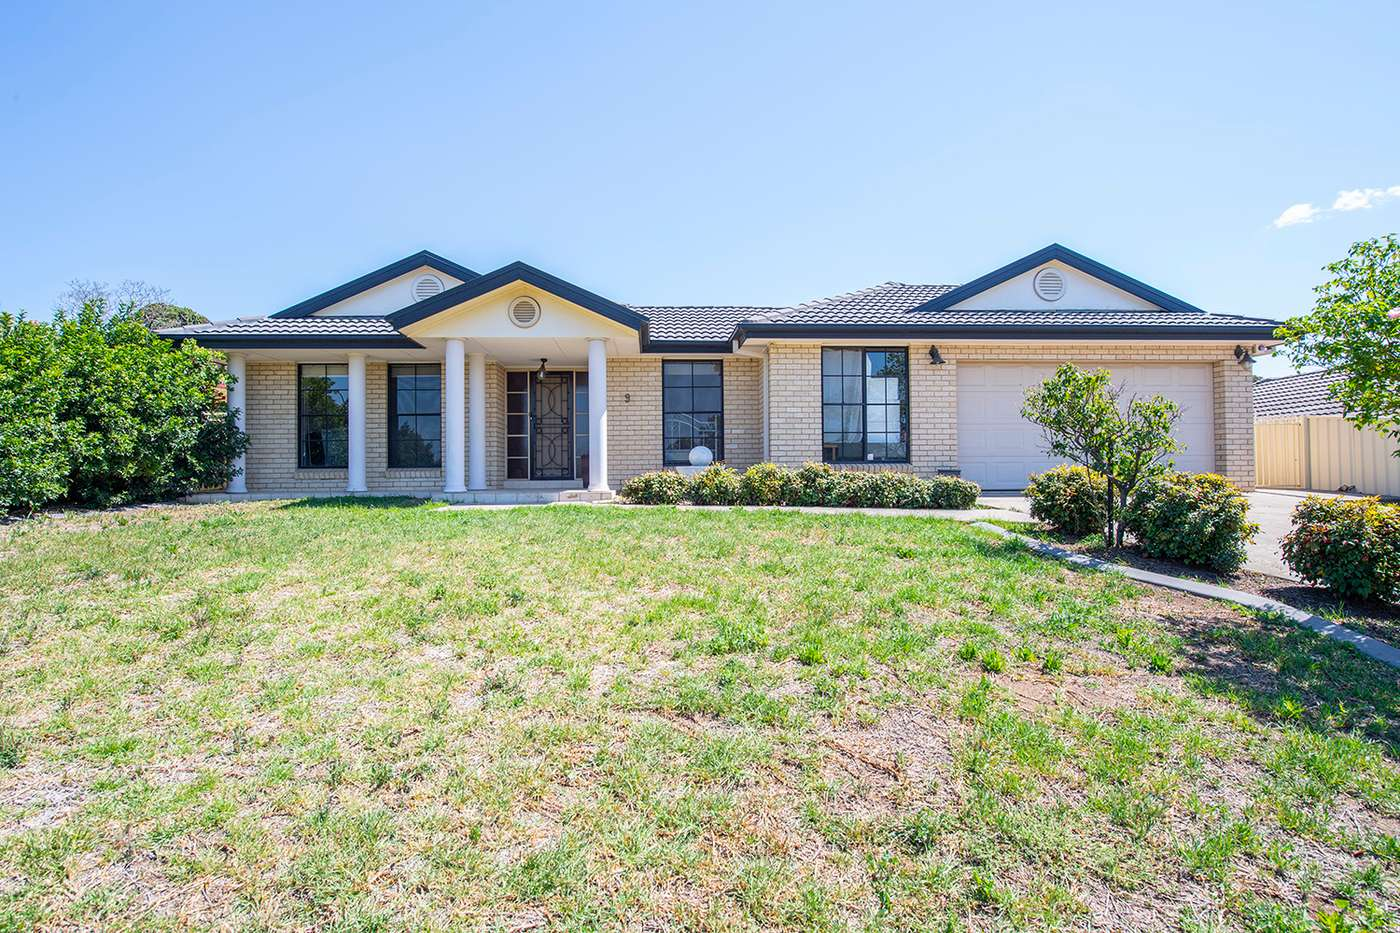 Main view of Homely house listing, 9 Fitzgerald Avenue, Muswellbrook, NSW 2333